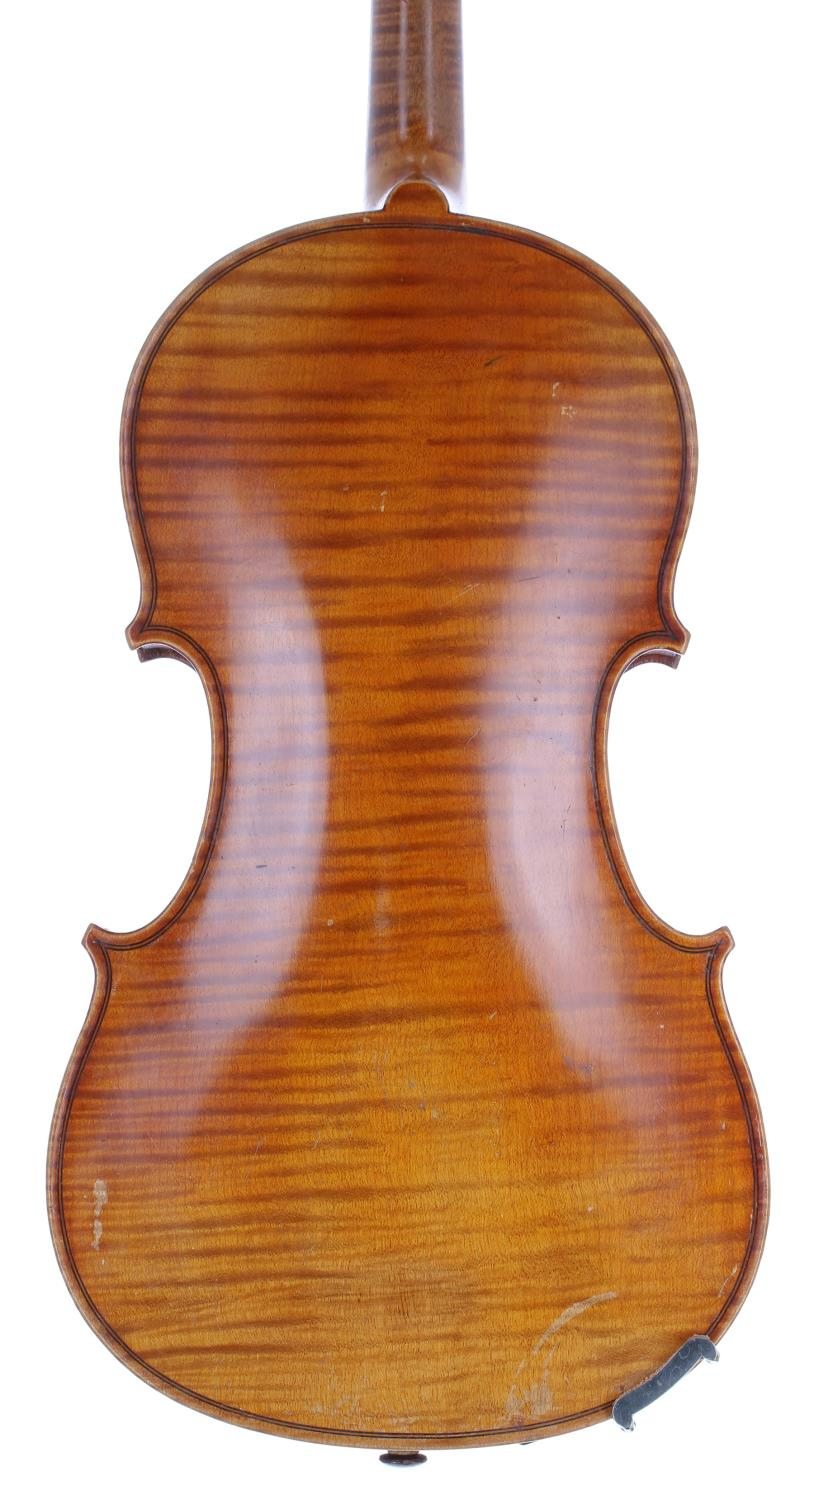 """French J.T.L. seven-eighth size violin, 13 3/4"""", 35.90cm, two bows - Image 2 of 3"""